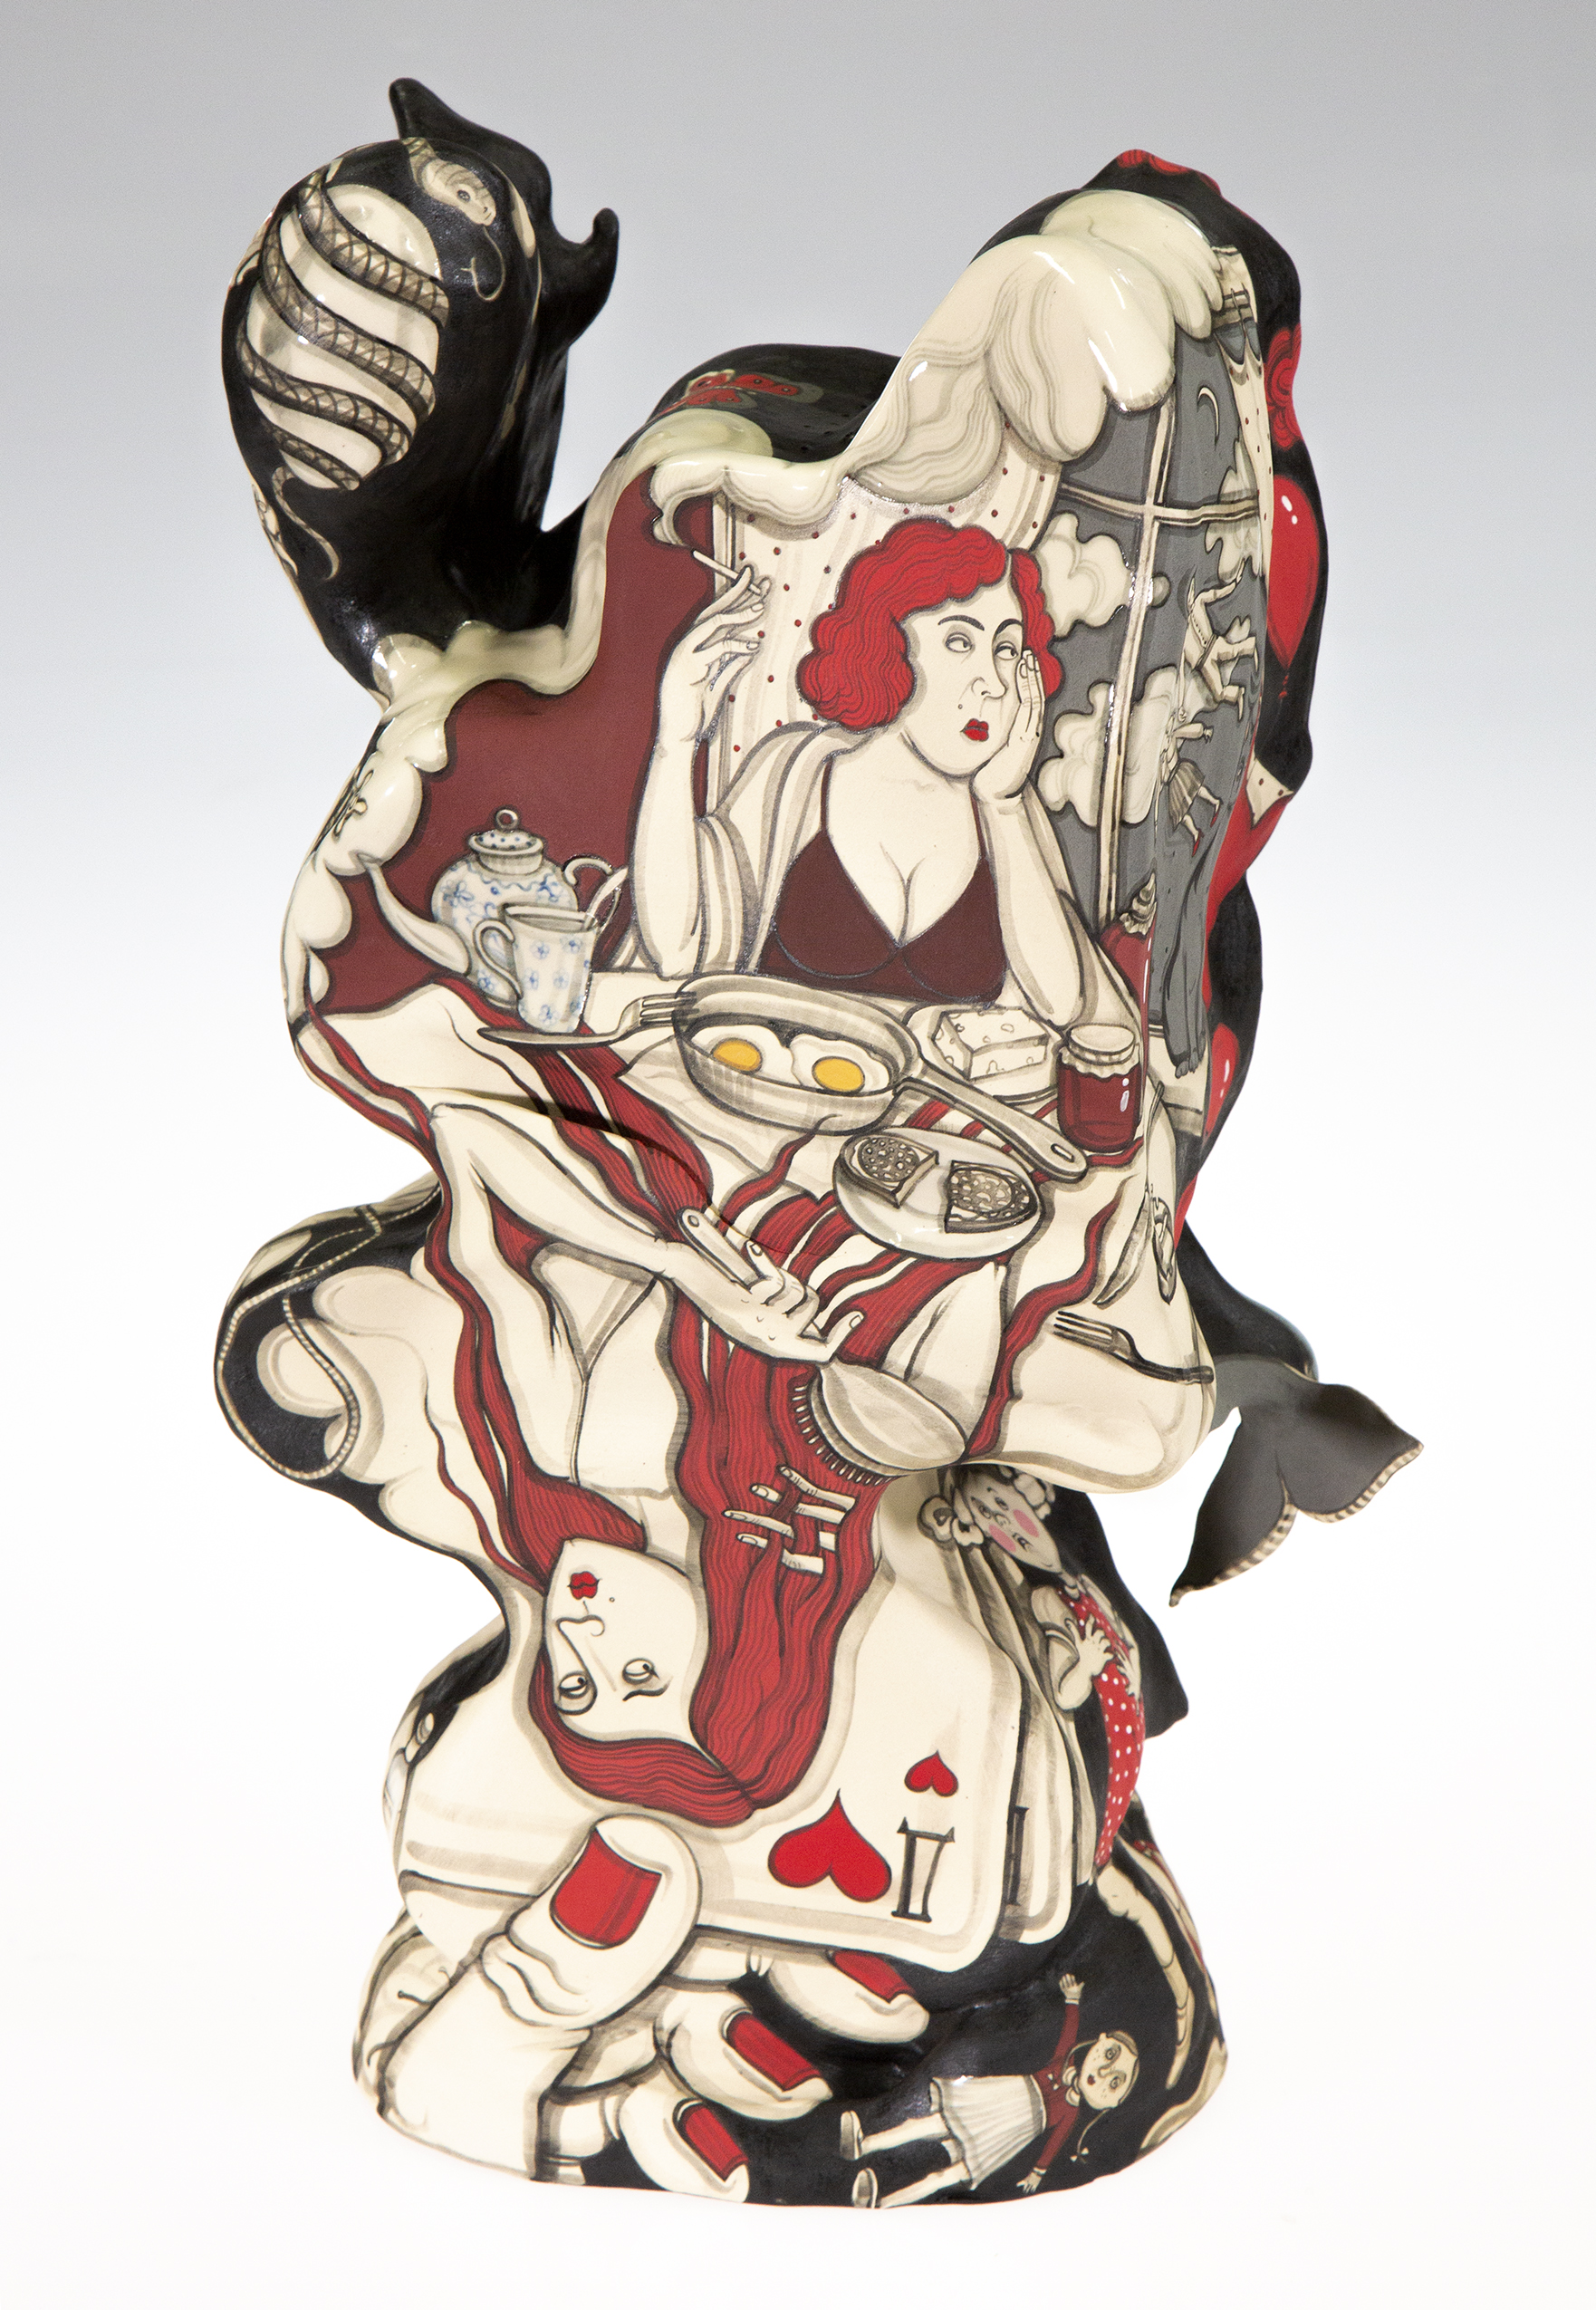 Revolutions  - Works in ceramic by Yana Payusova